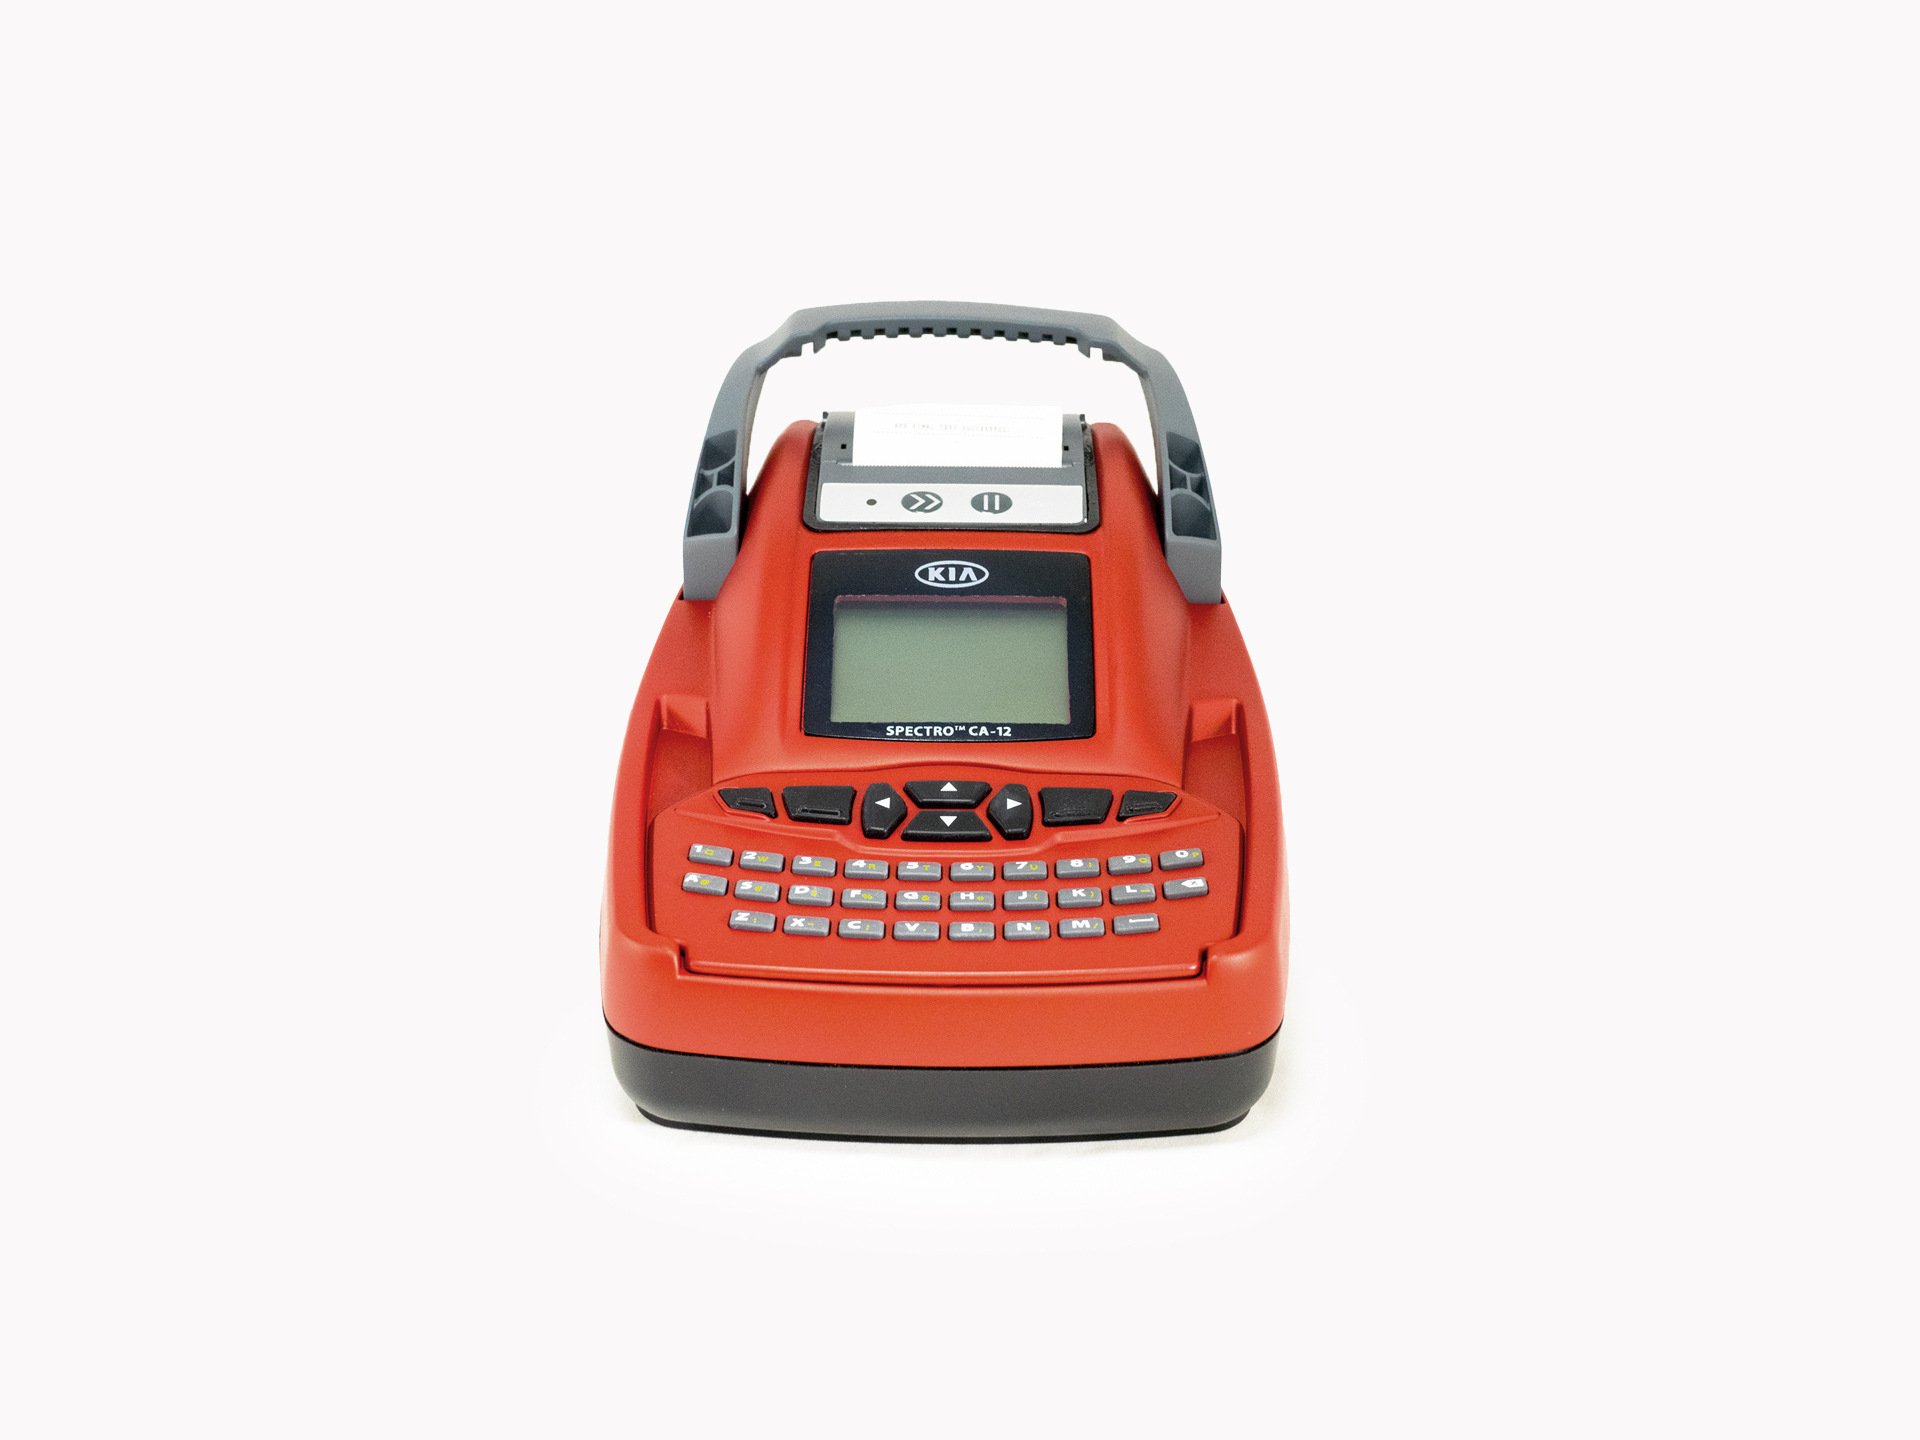 A red version of the CADEX Spectro Rapid Battery Analyzer on a plain white background.